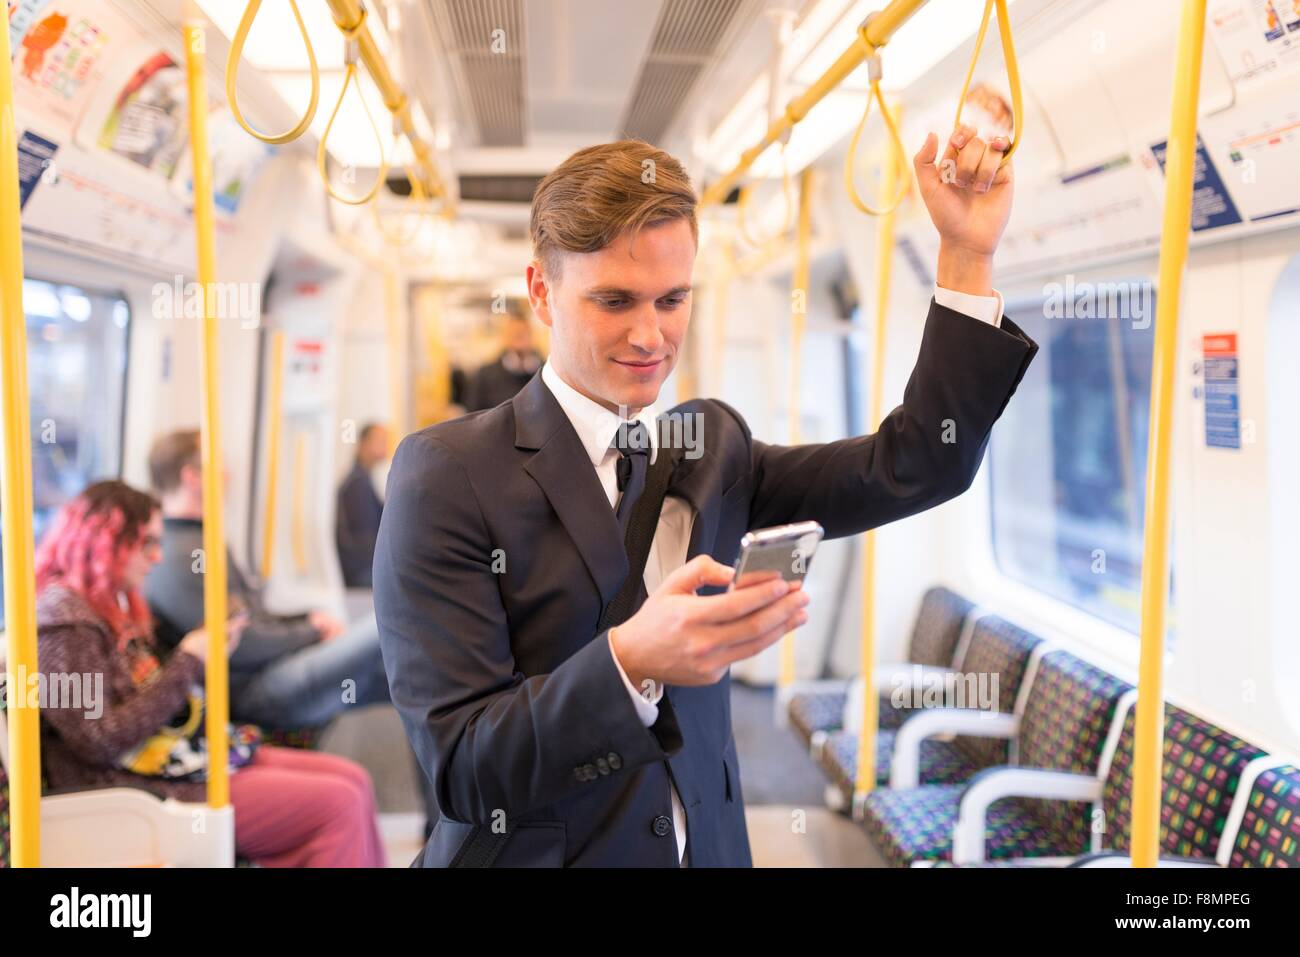 Businessman texting on tube, London Underground, UK - Stock Image